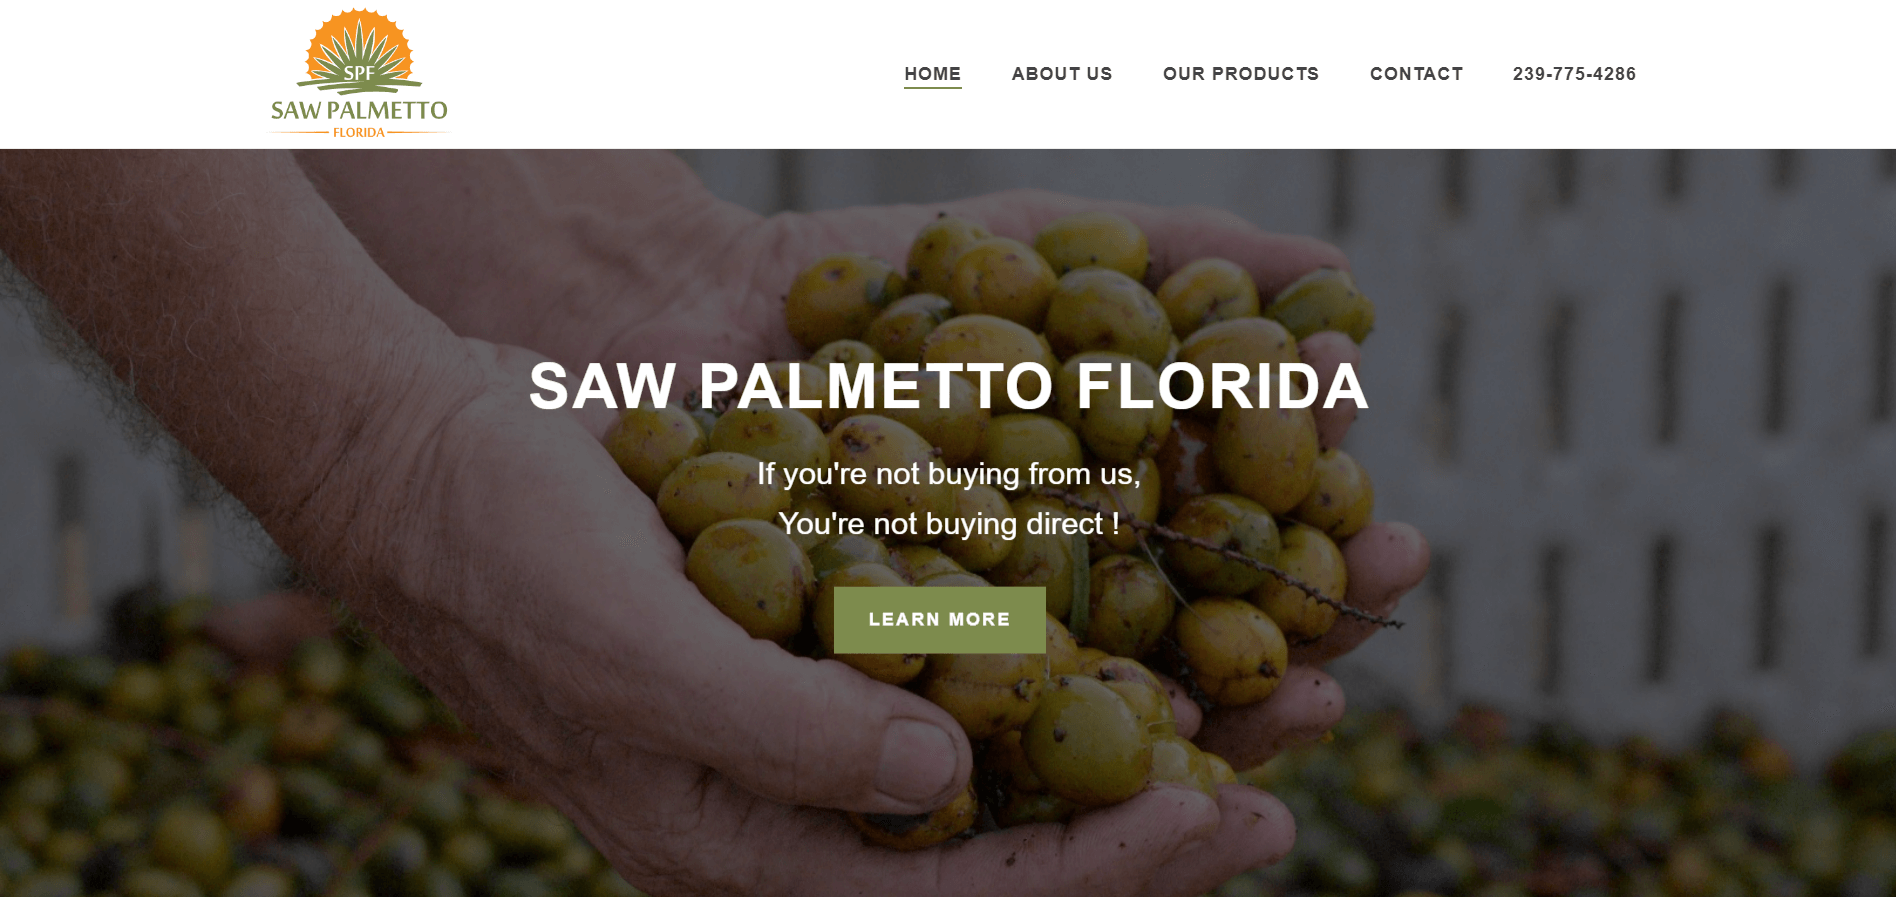 saw palmetto florida splash page